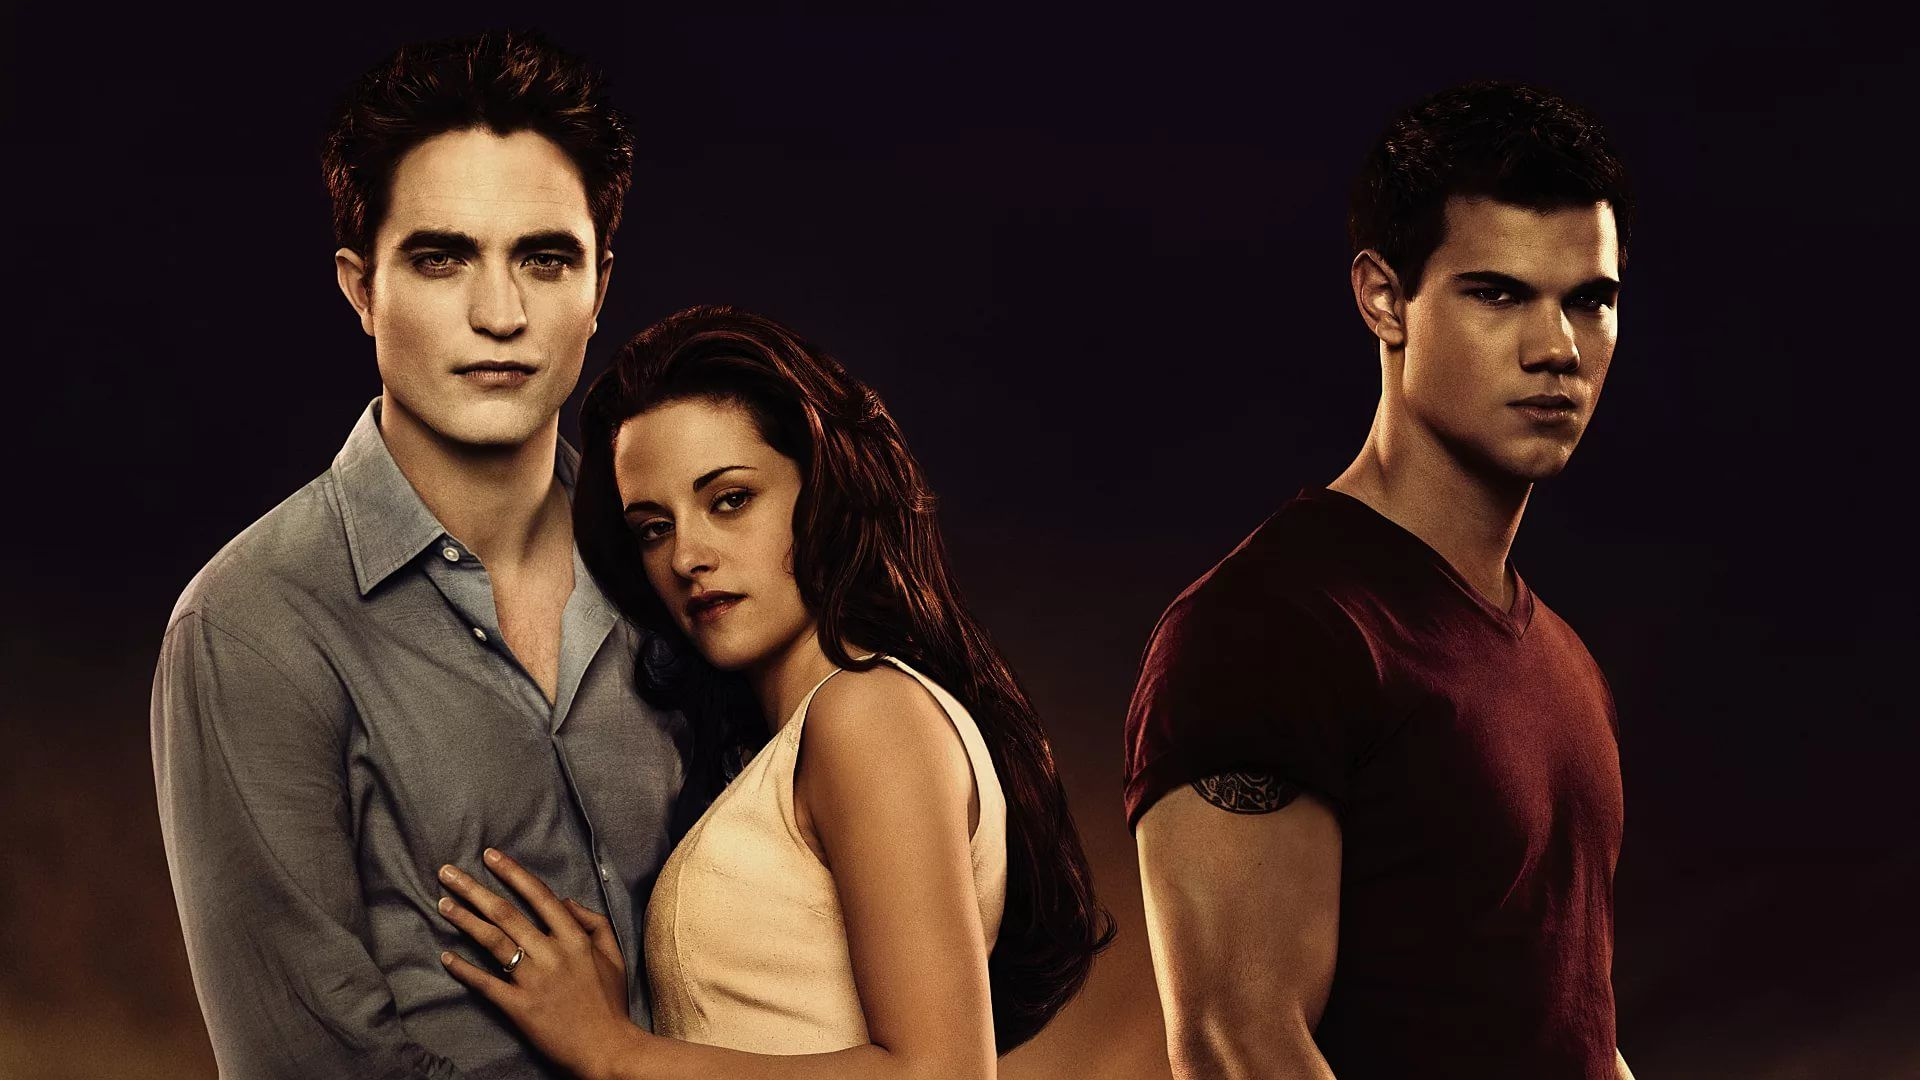 Twilight Saga Free Download Wallpaper